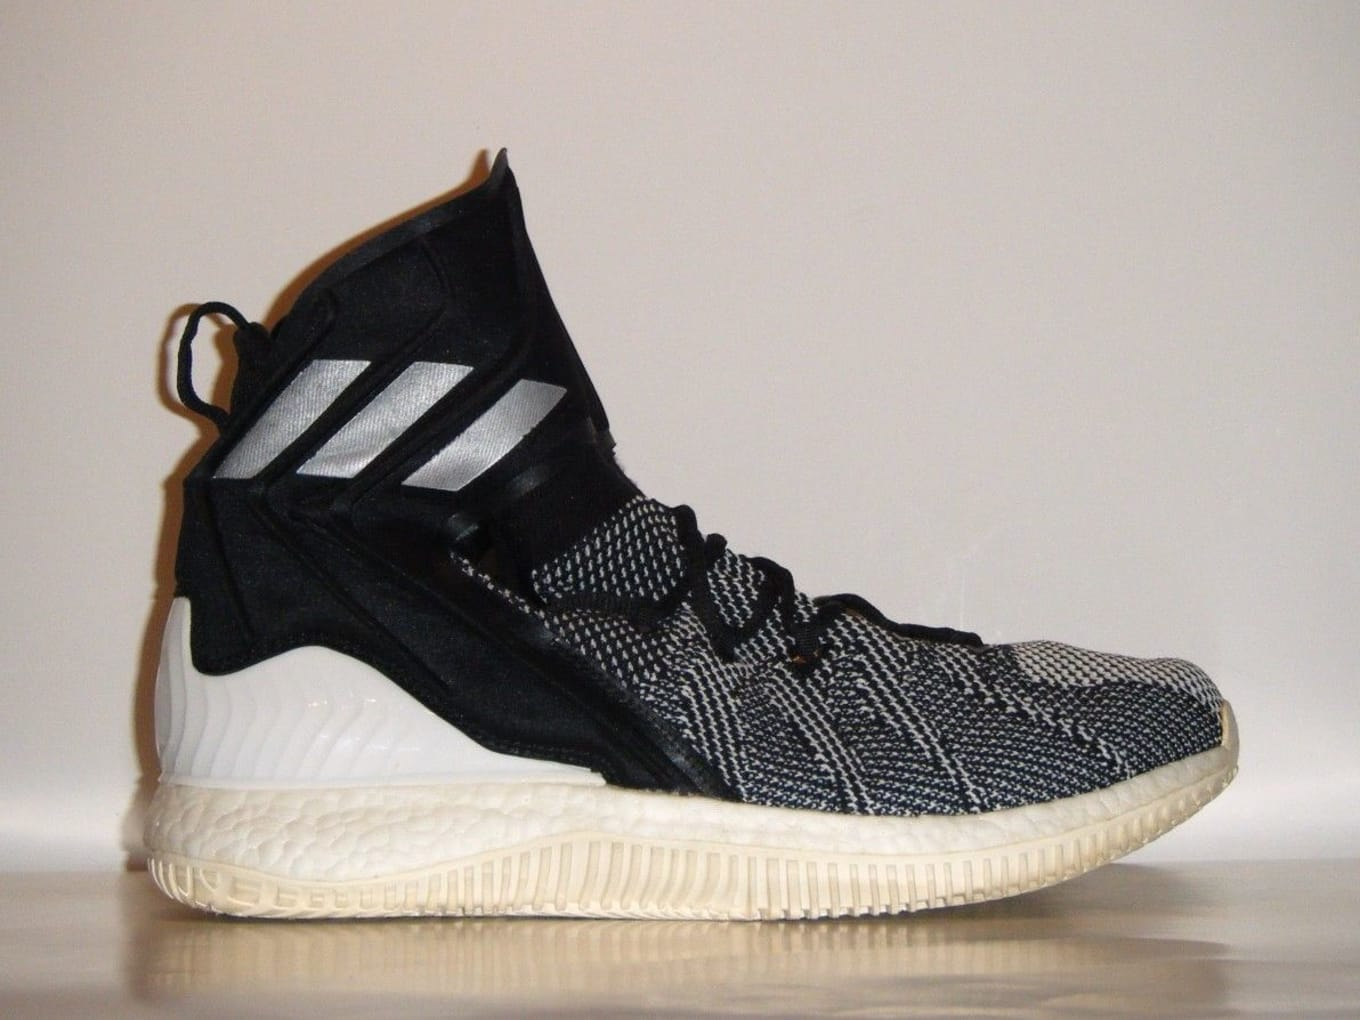 promo code d567e 3ef83 Is Adidas Making Ultra Boost Basketball Shoes  A prototype surfaces on eBay.